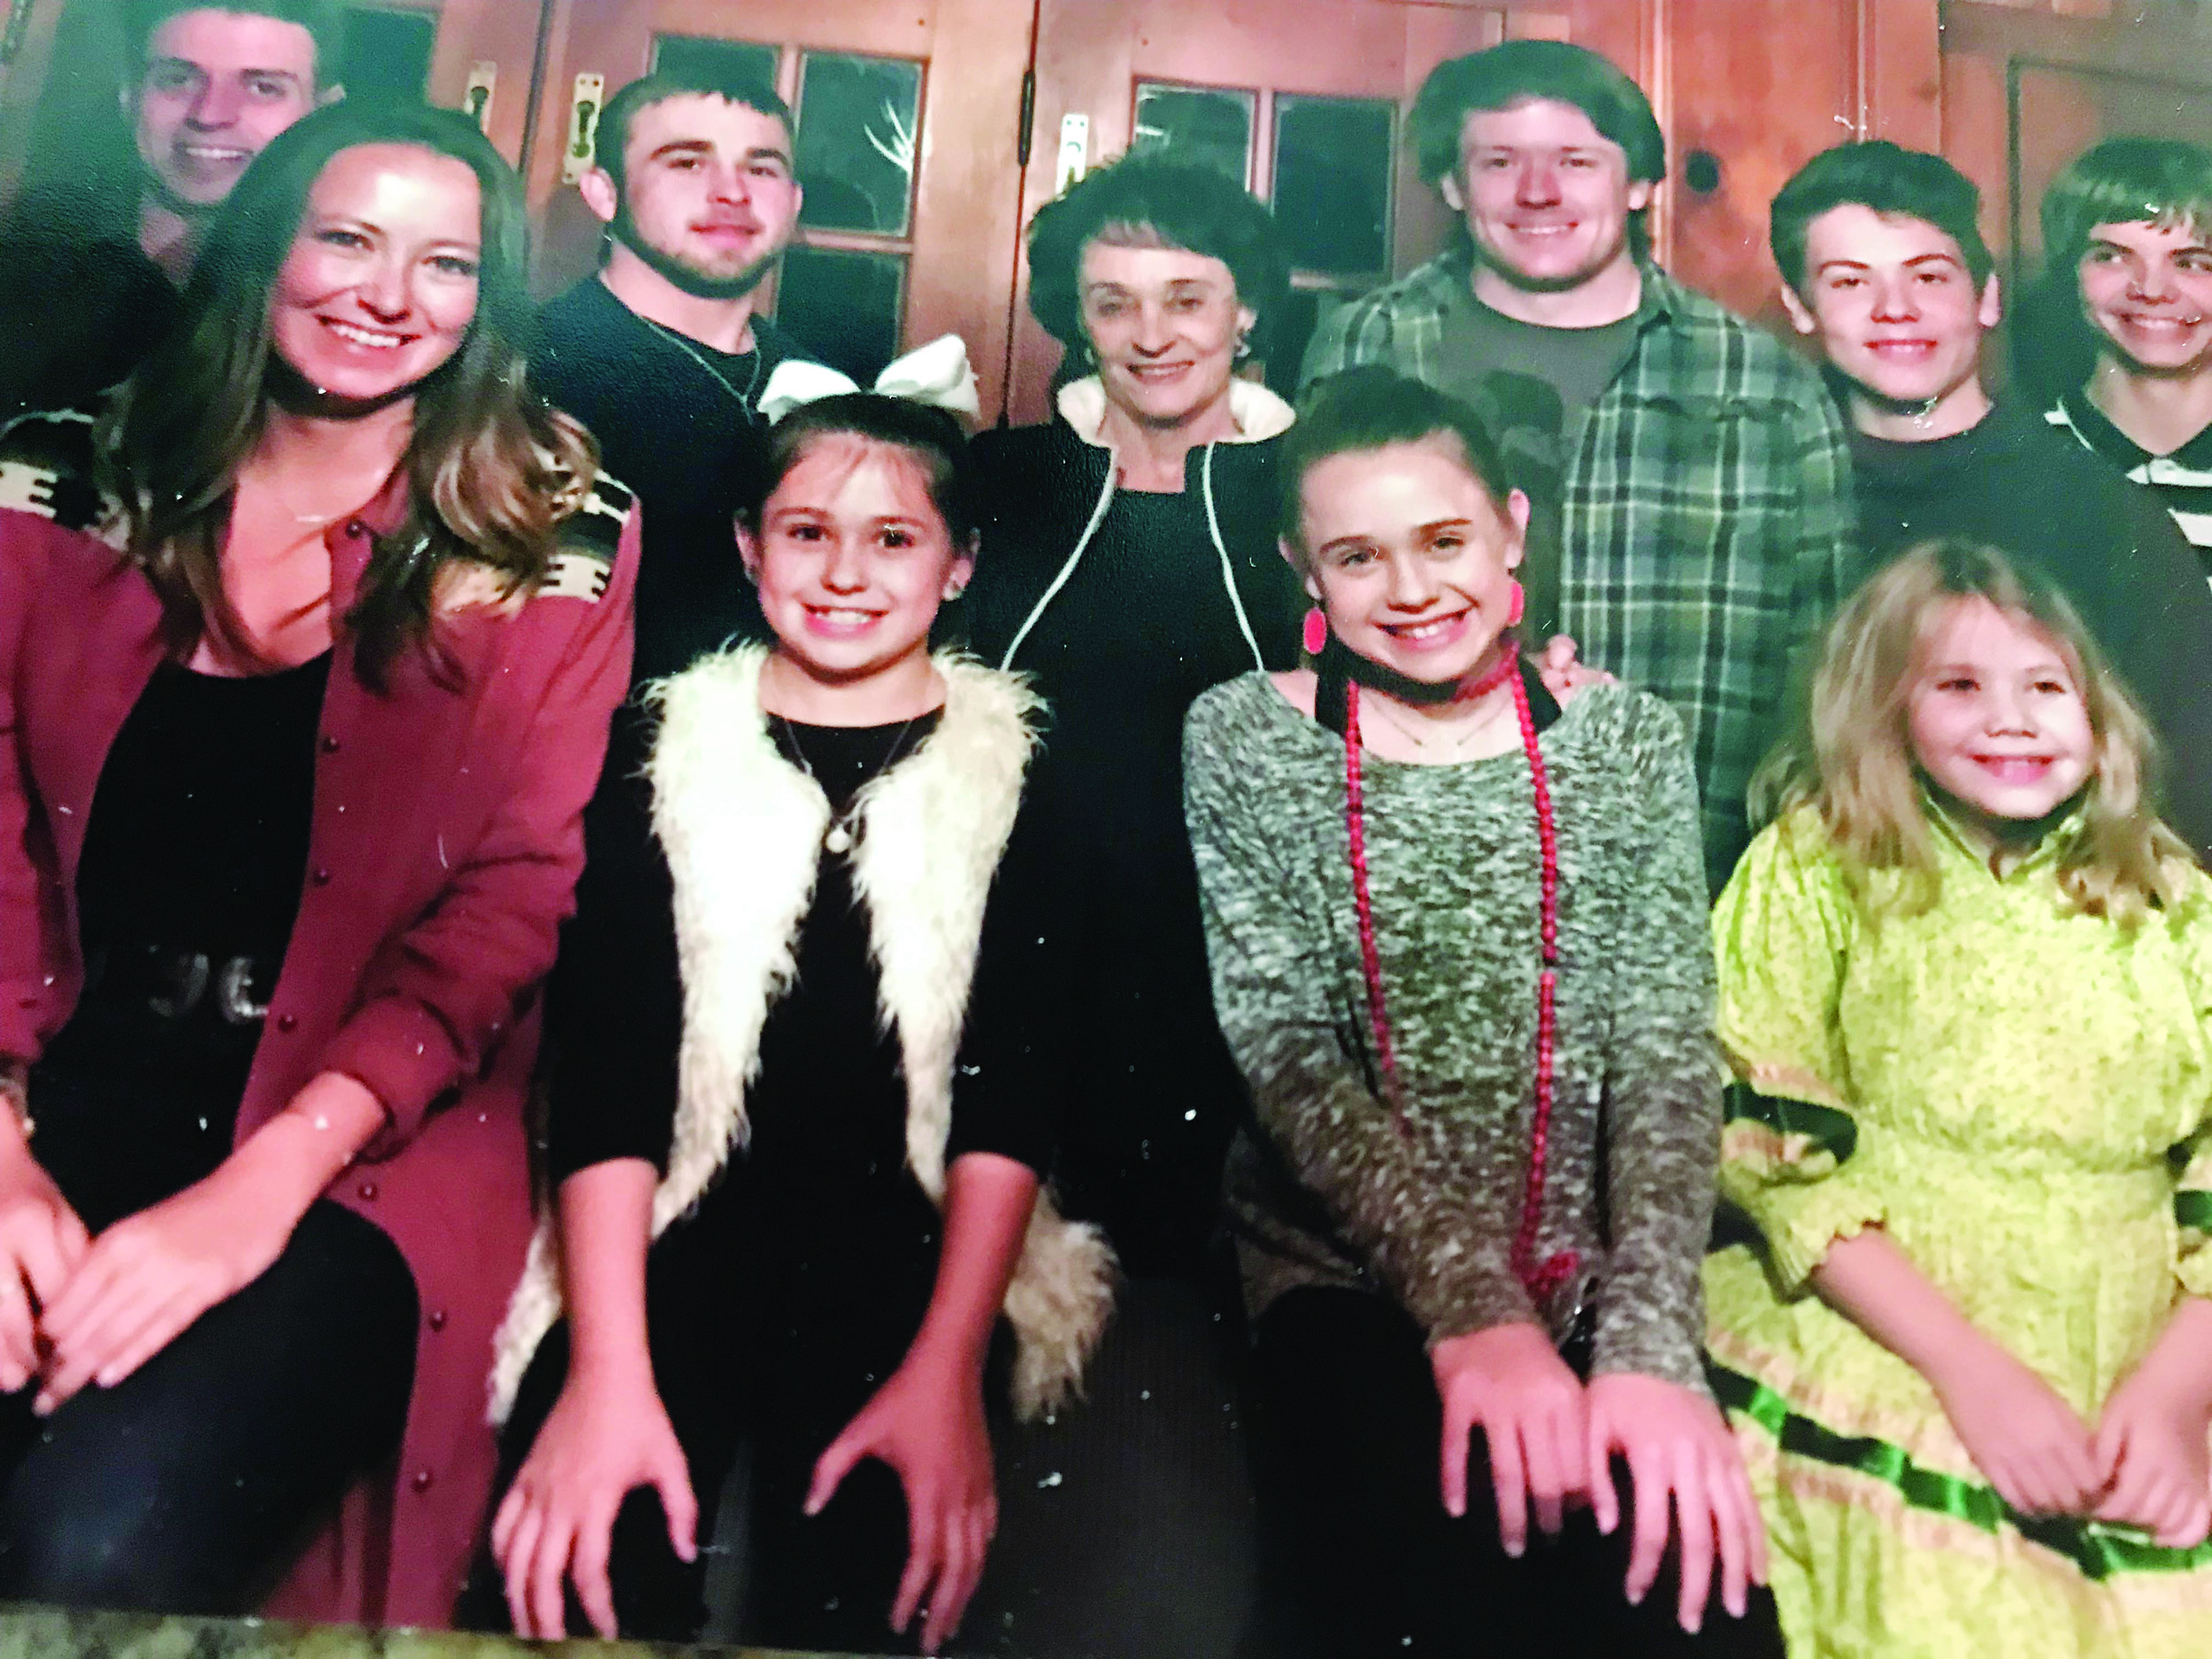 Betty Jo surrounded by her nine grandchildren on Thanksgiving 2017. With her are: (front row) Allie, Francie, Helen Clark and Clementine; (back row) Edward, Luker, Thomas, Arthur and Tristan.